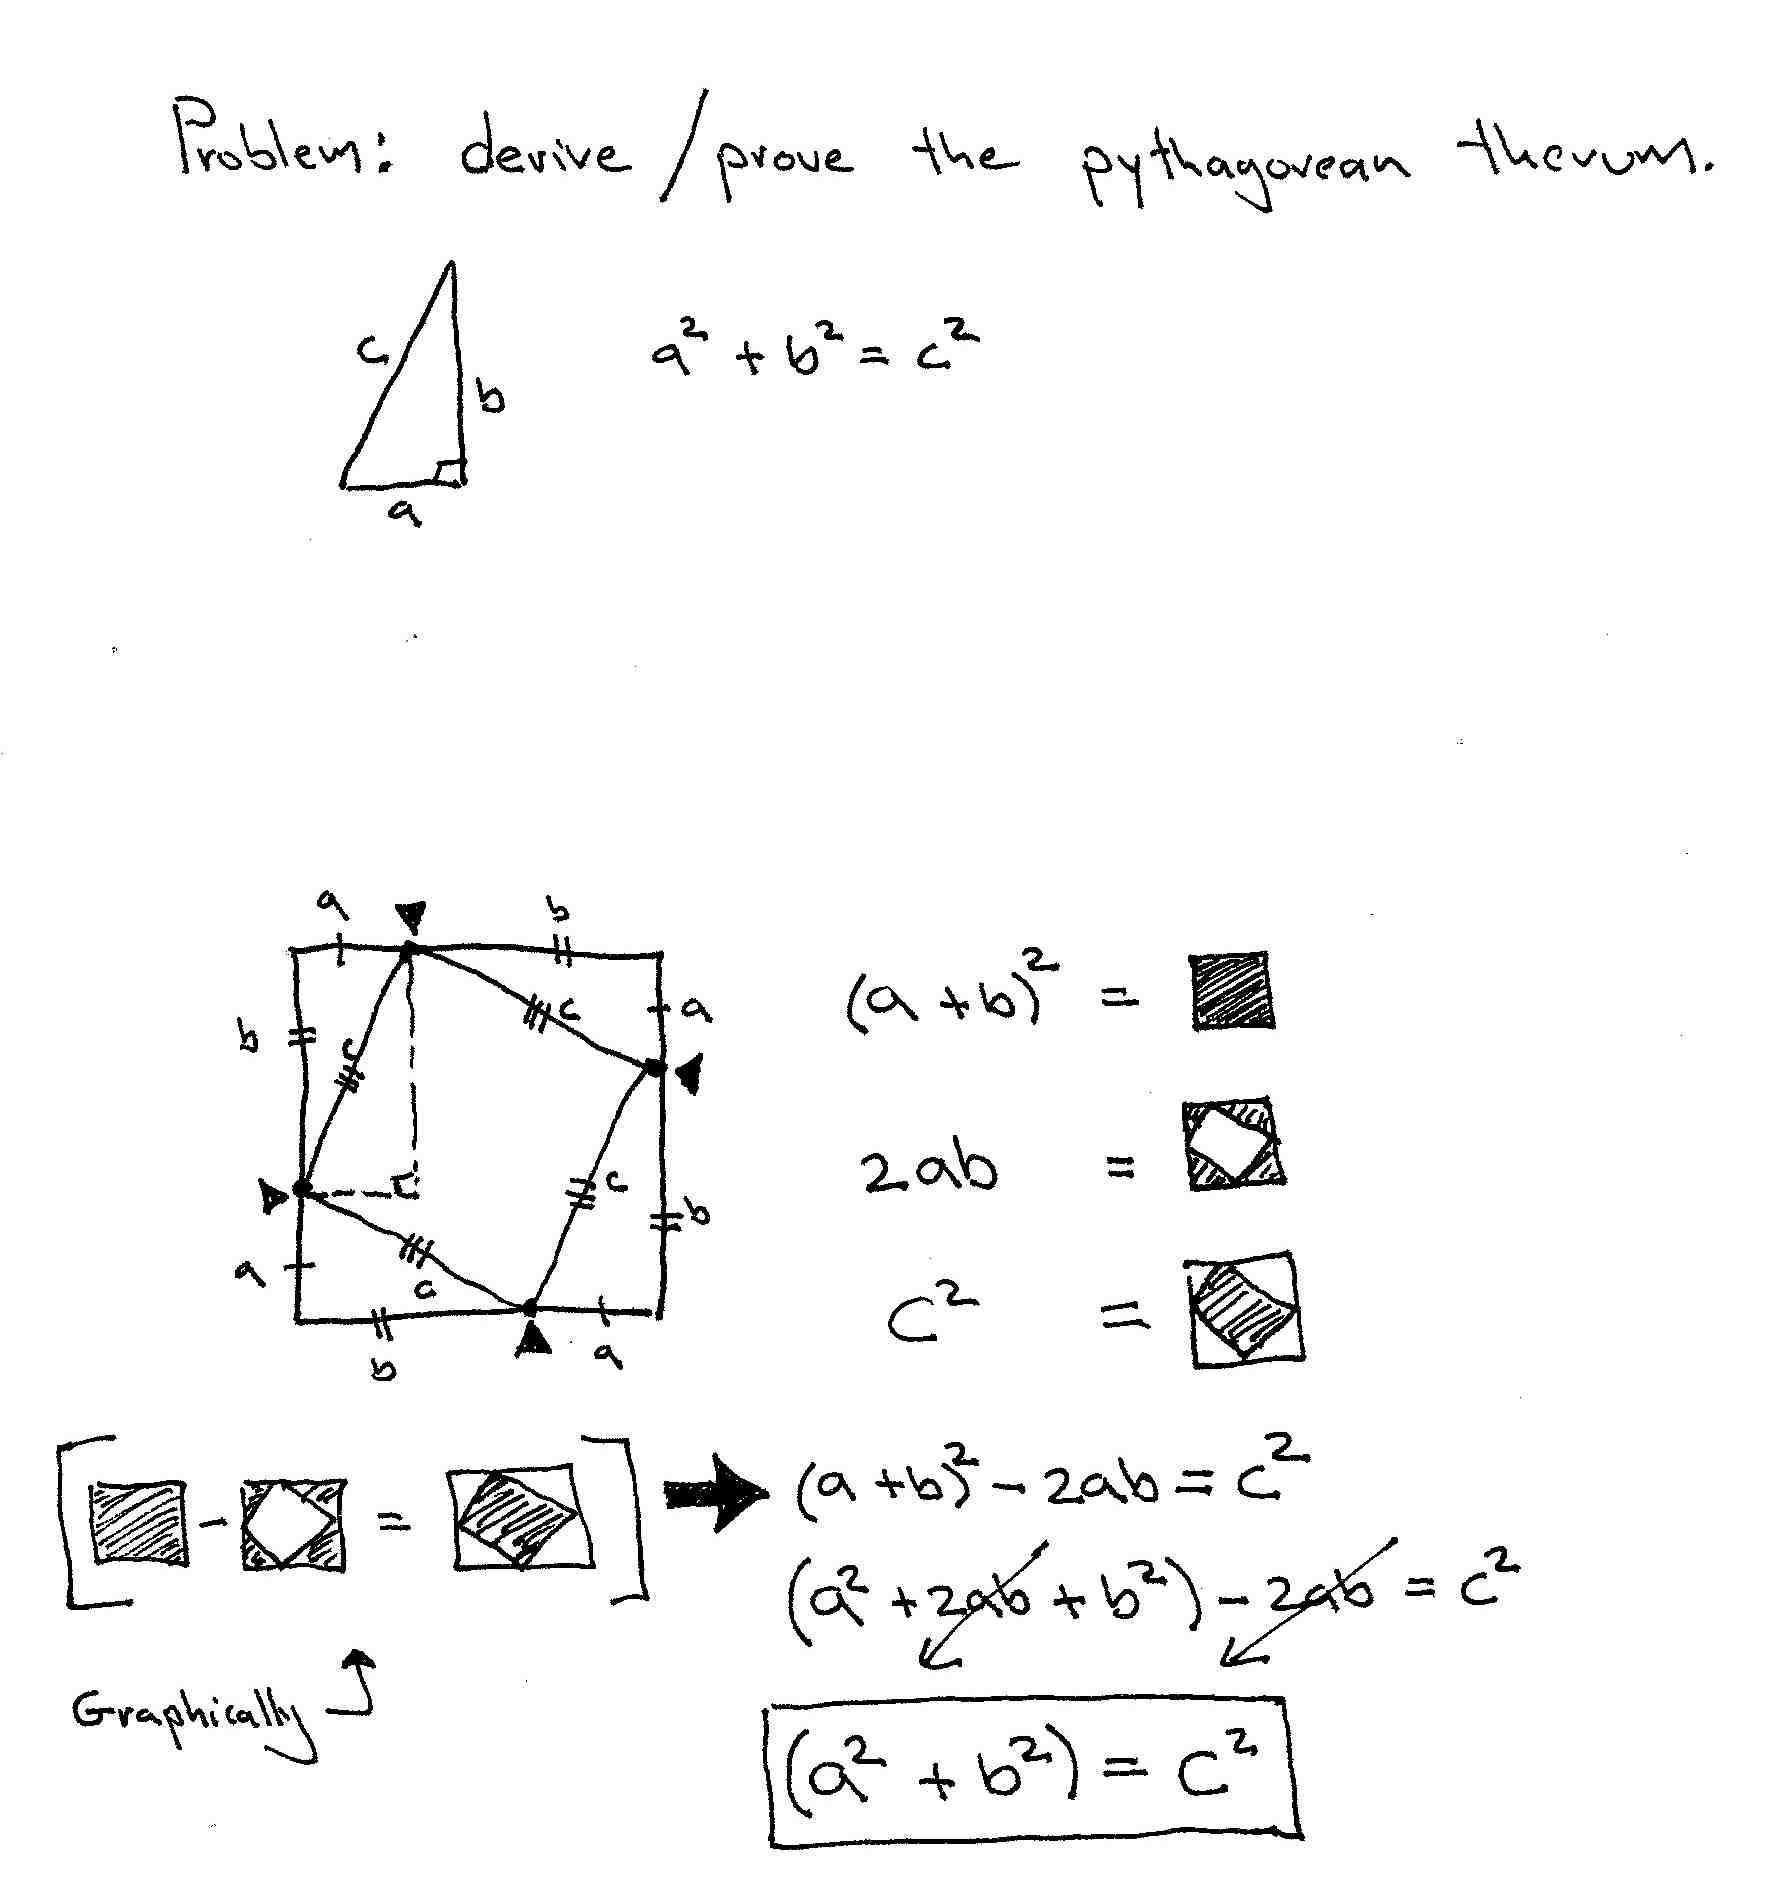 Aaron Toneys Homepage : Puzzles and Brain Teasers : Geometry ...